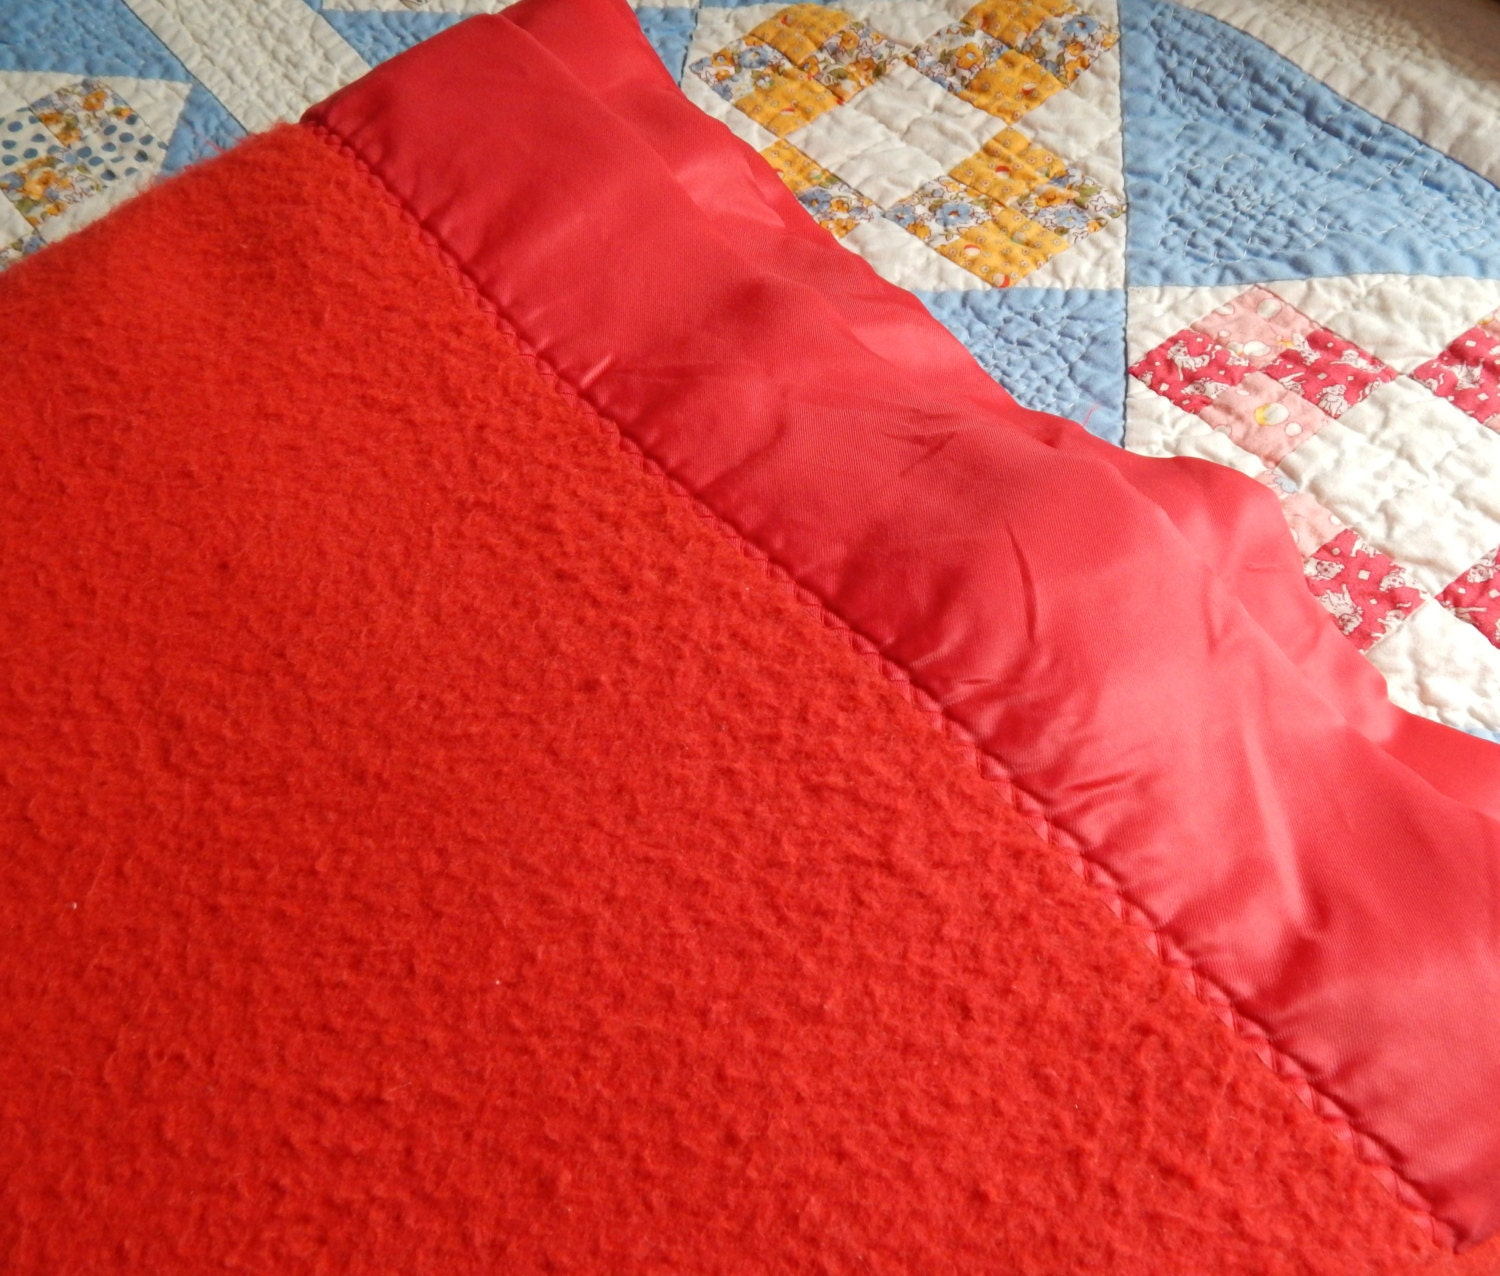 Soft Red Queen Sized Blanket With Satin Trim By Solachristine